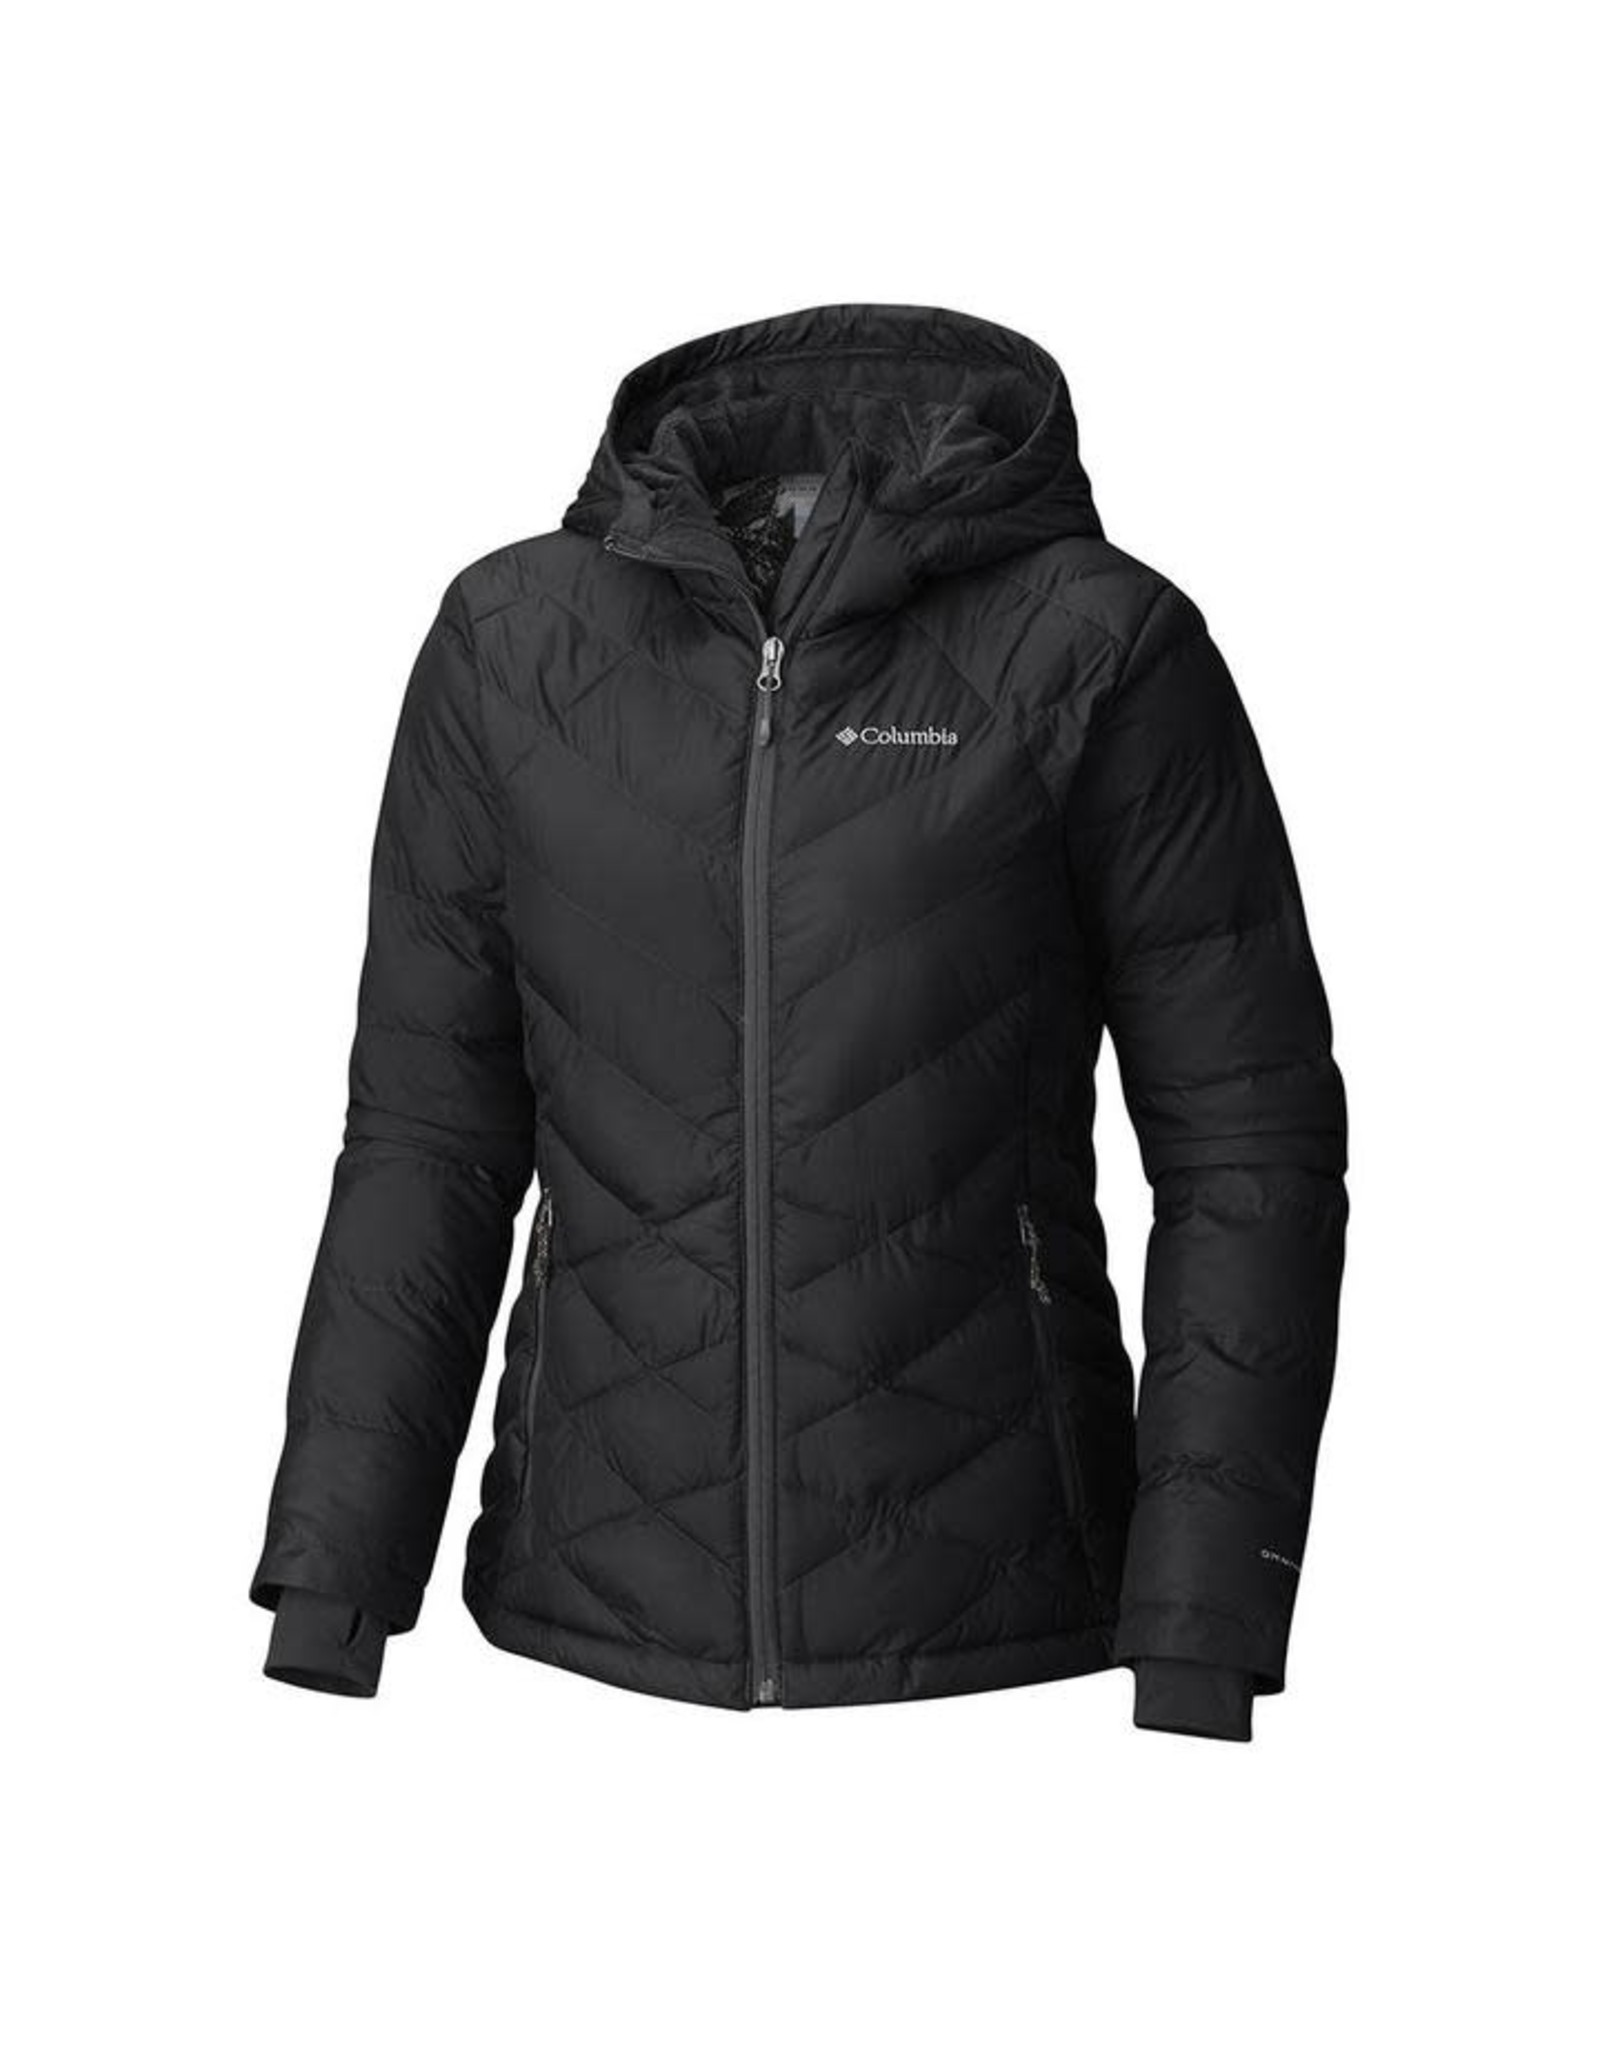 Columbia Women's Heavenly Hooded Jacket